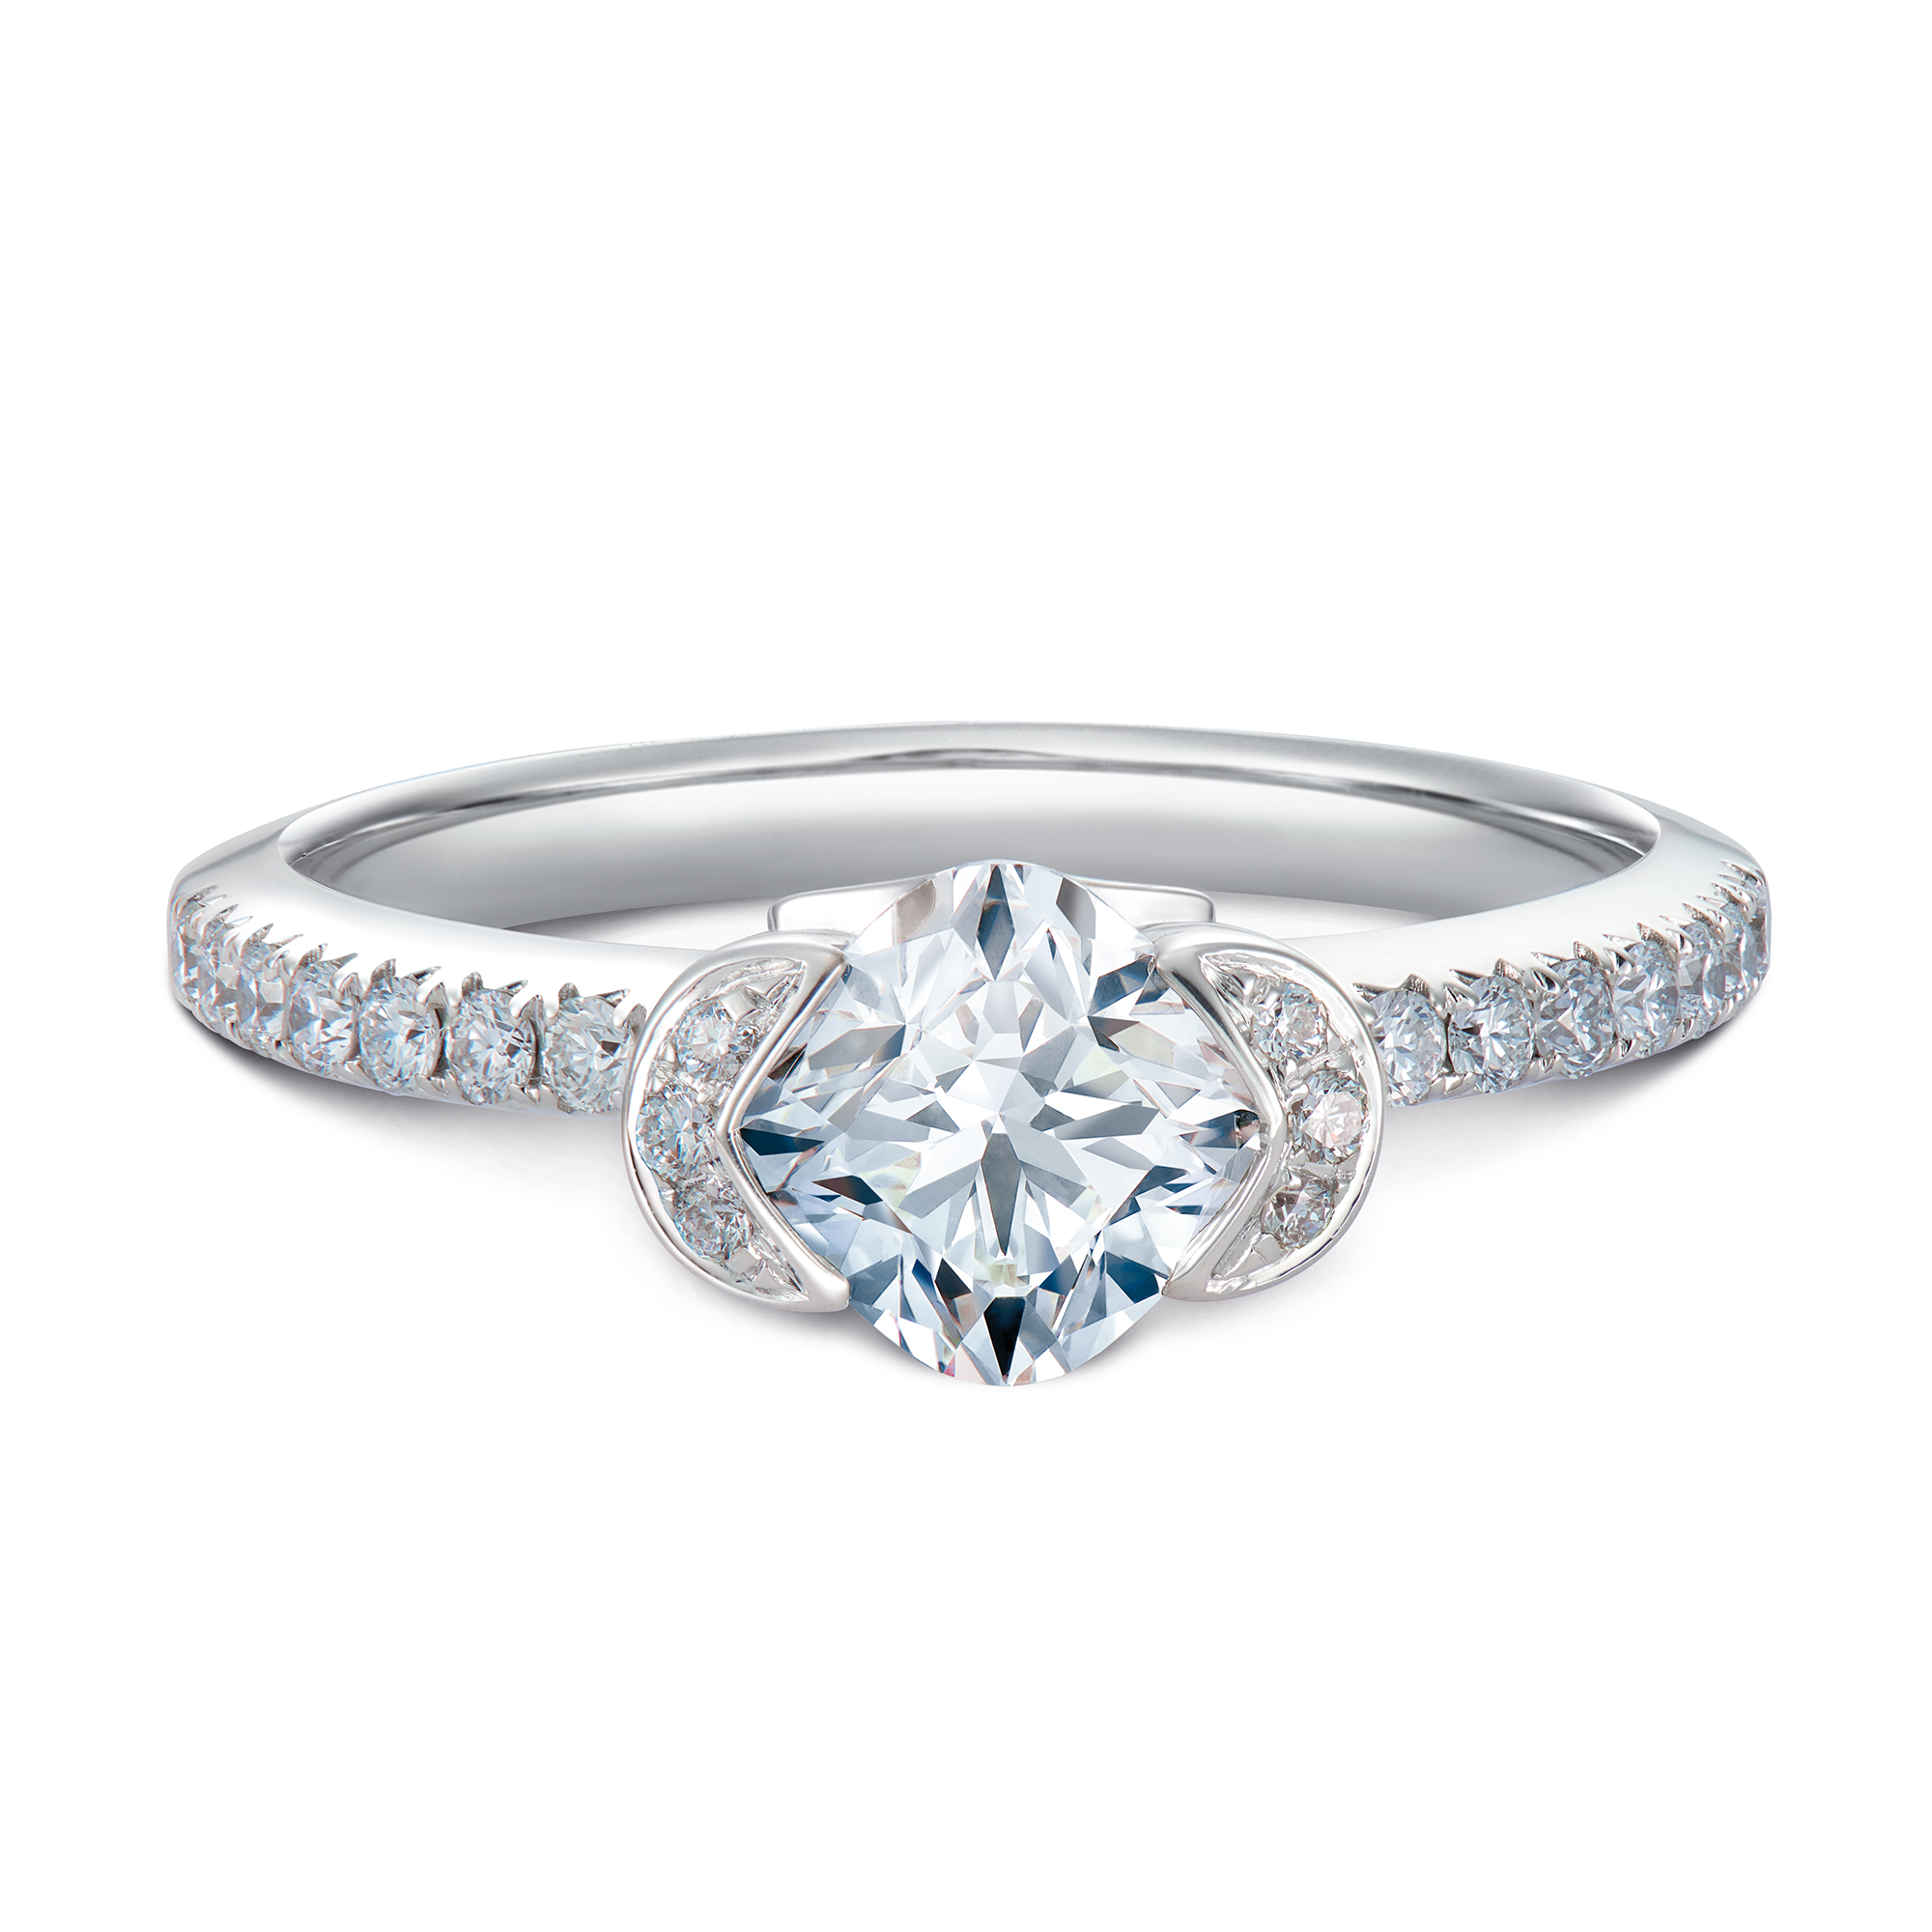 31f1a3970 Imperiale for Forevermark Pave Solitaire Diamond Ring - DeGem ...